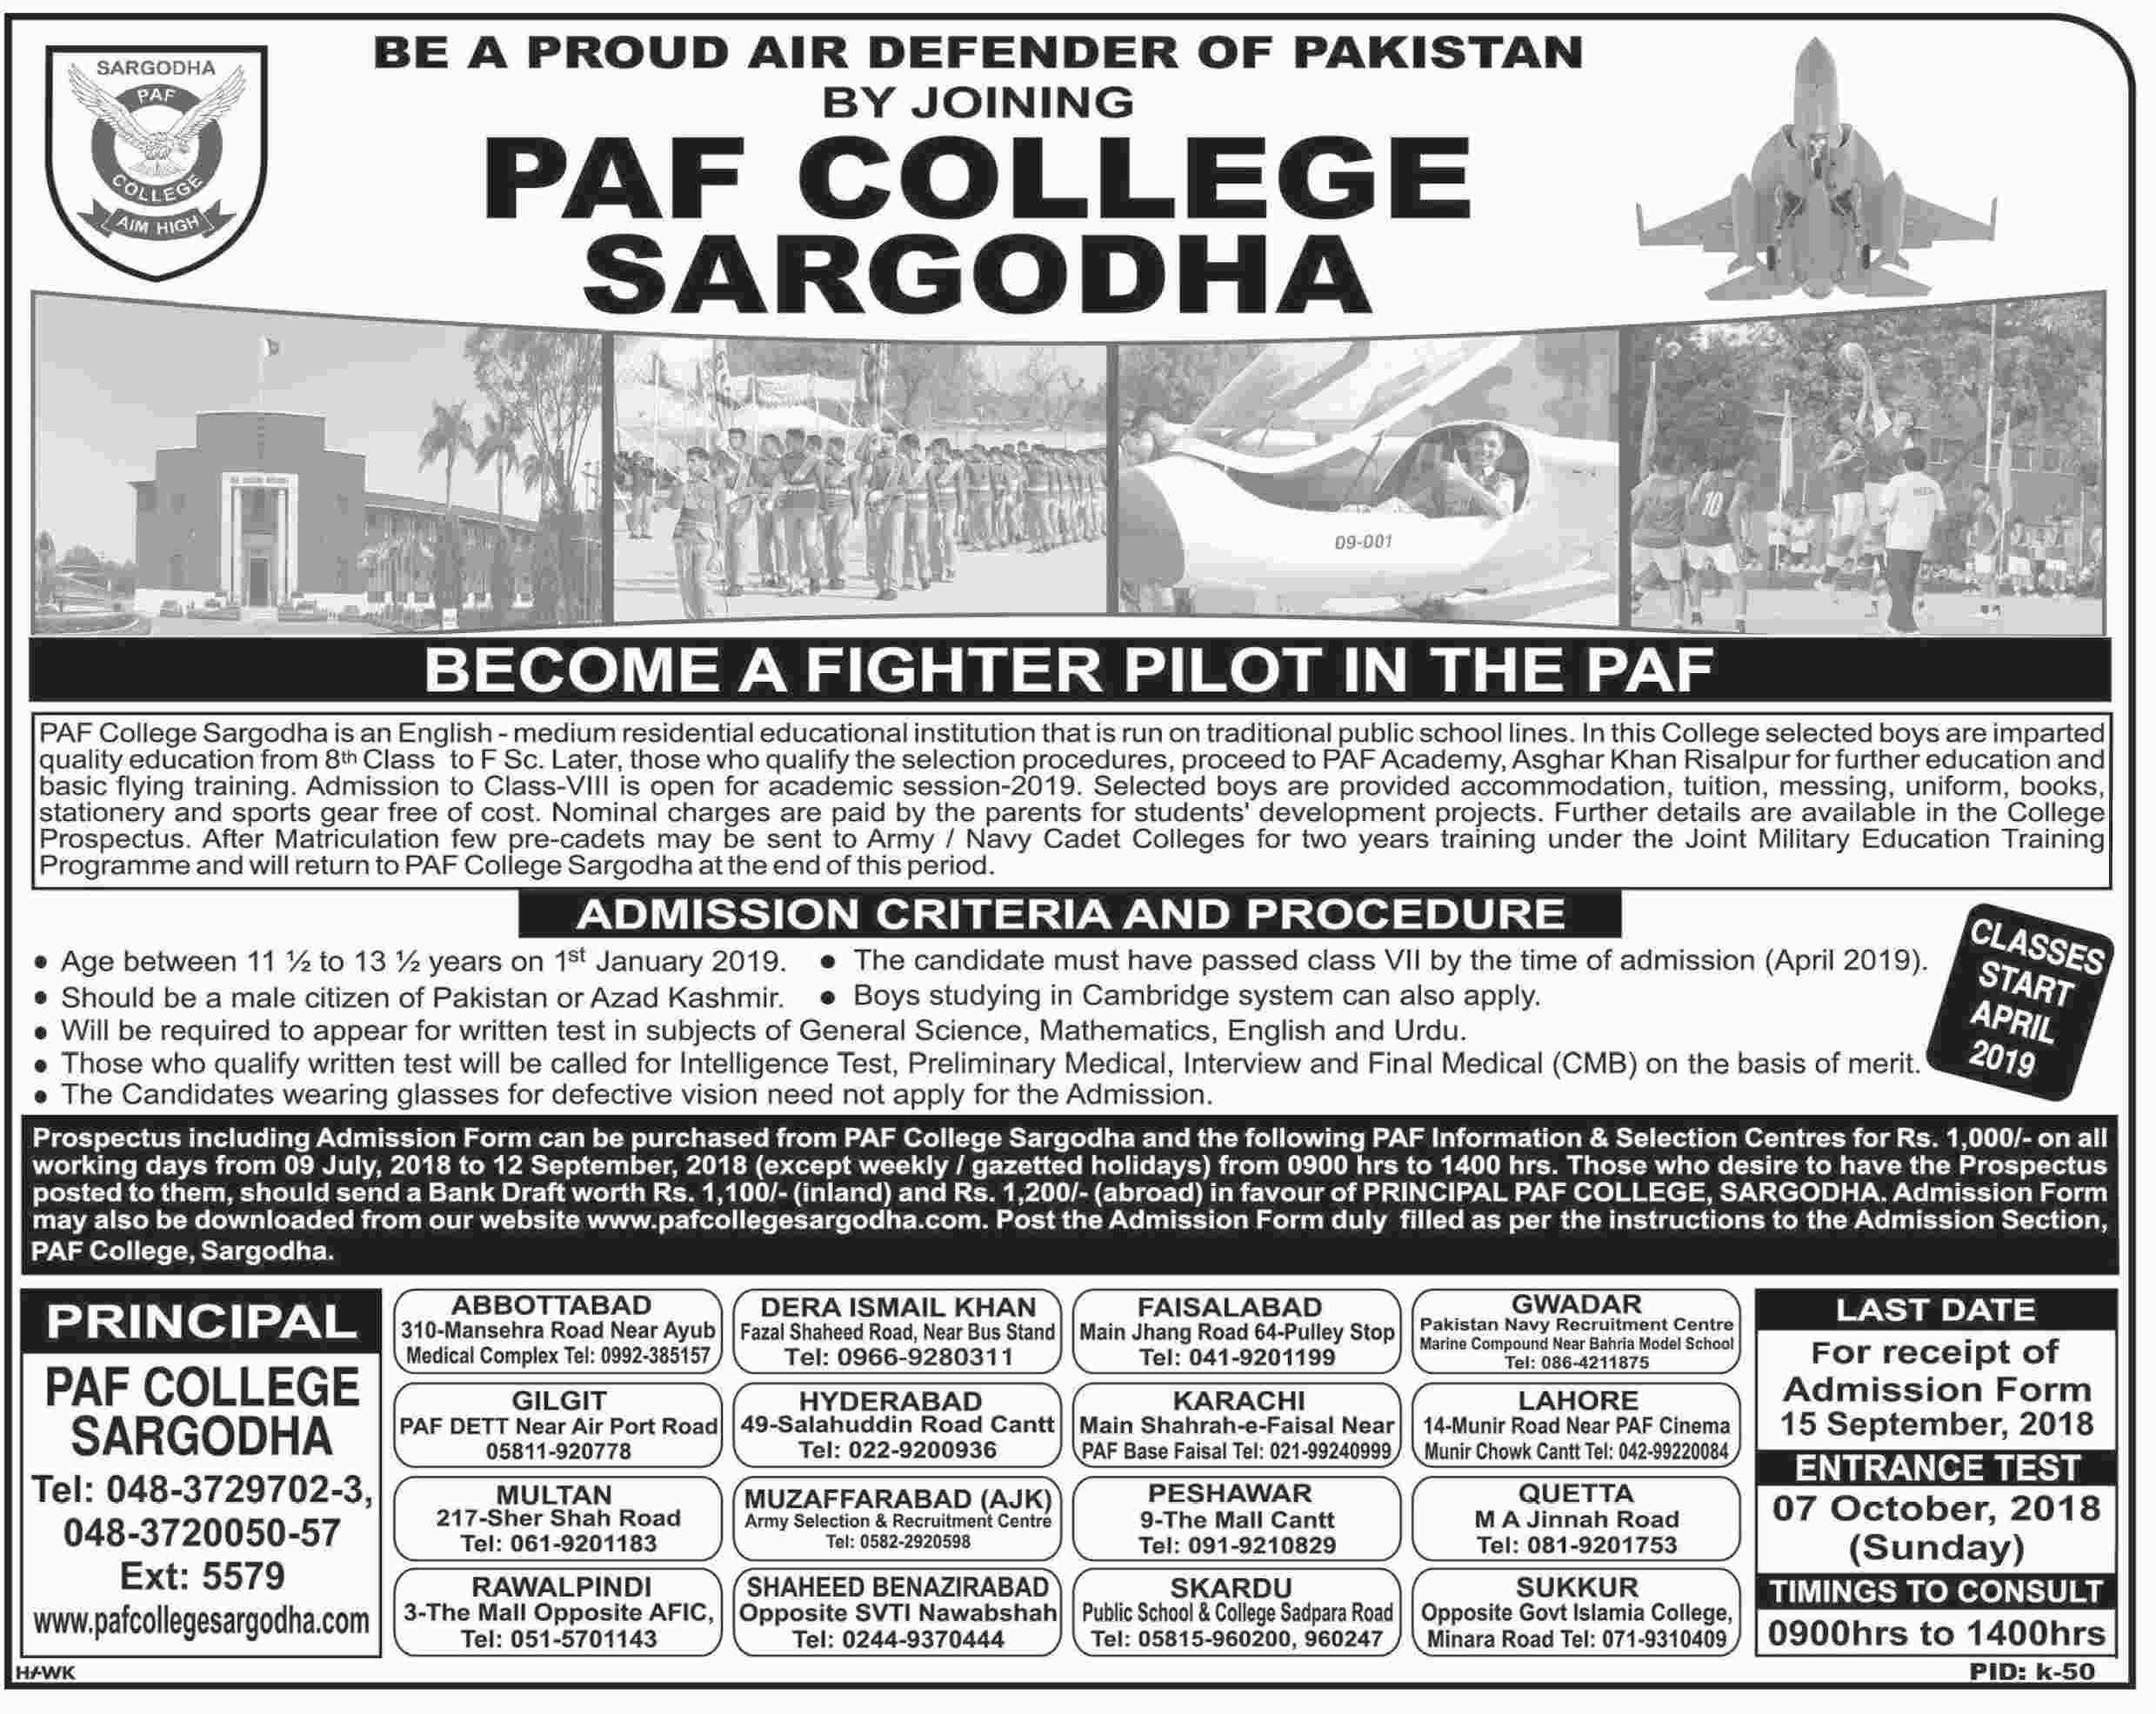 Jobs - Become a Fighter Pilot in PAF